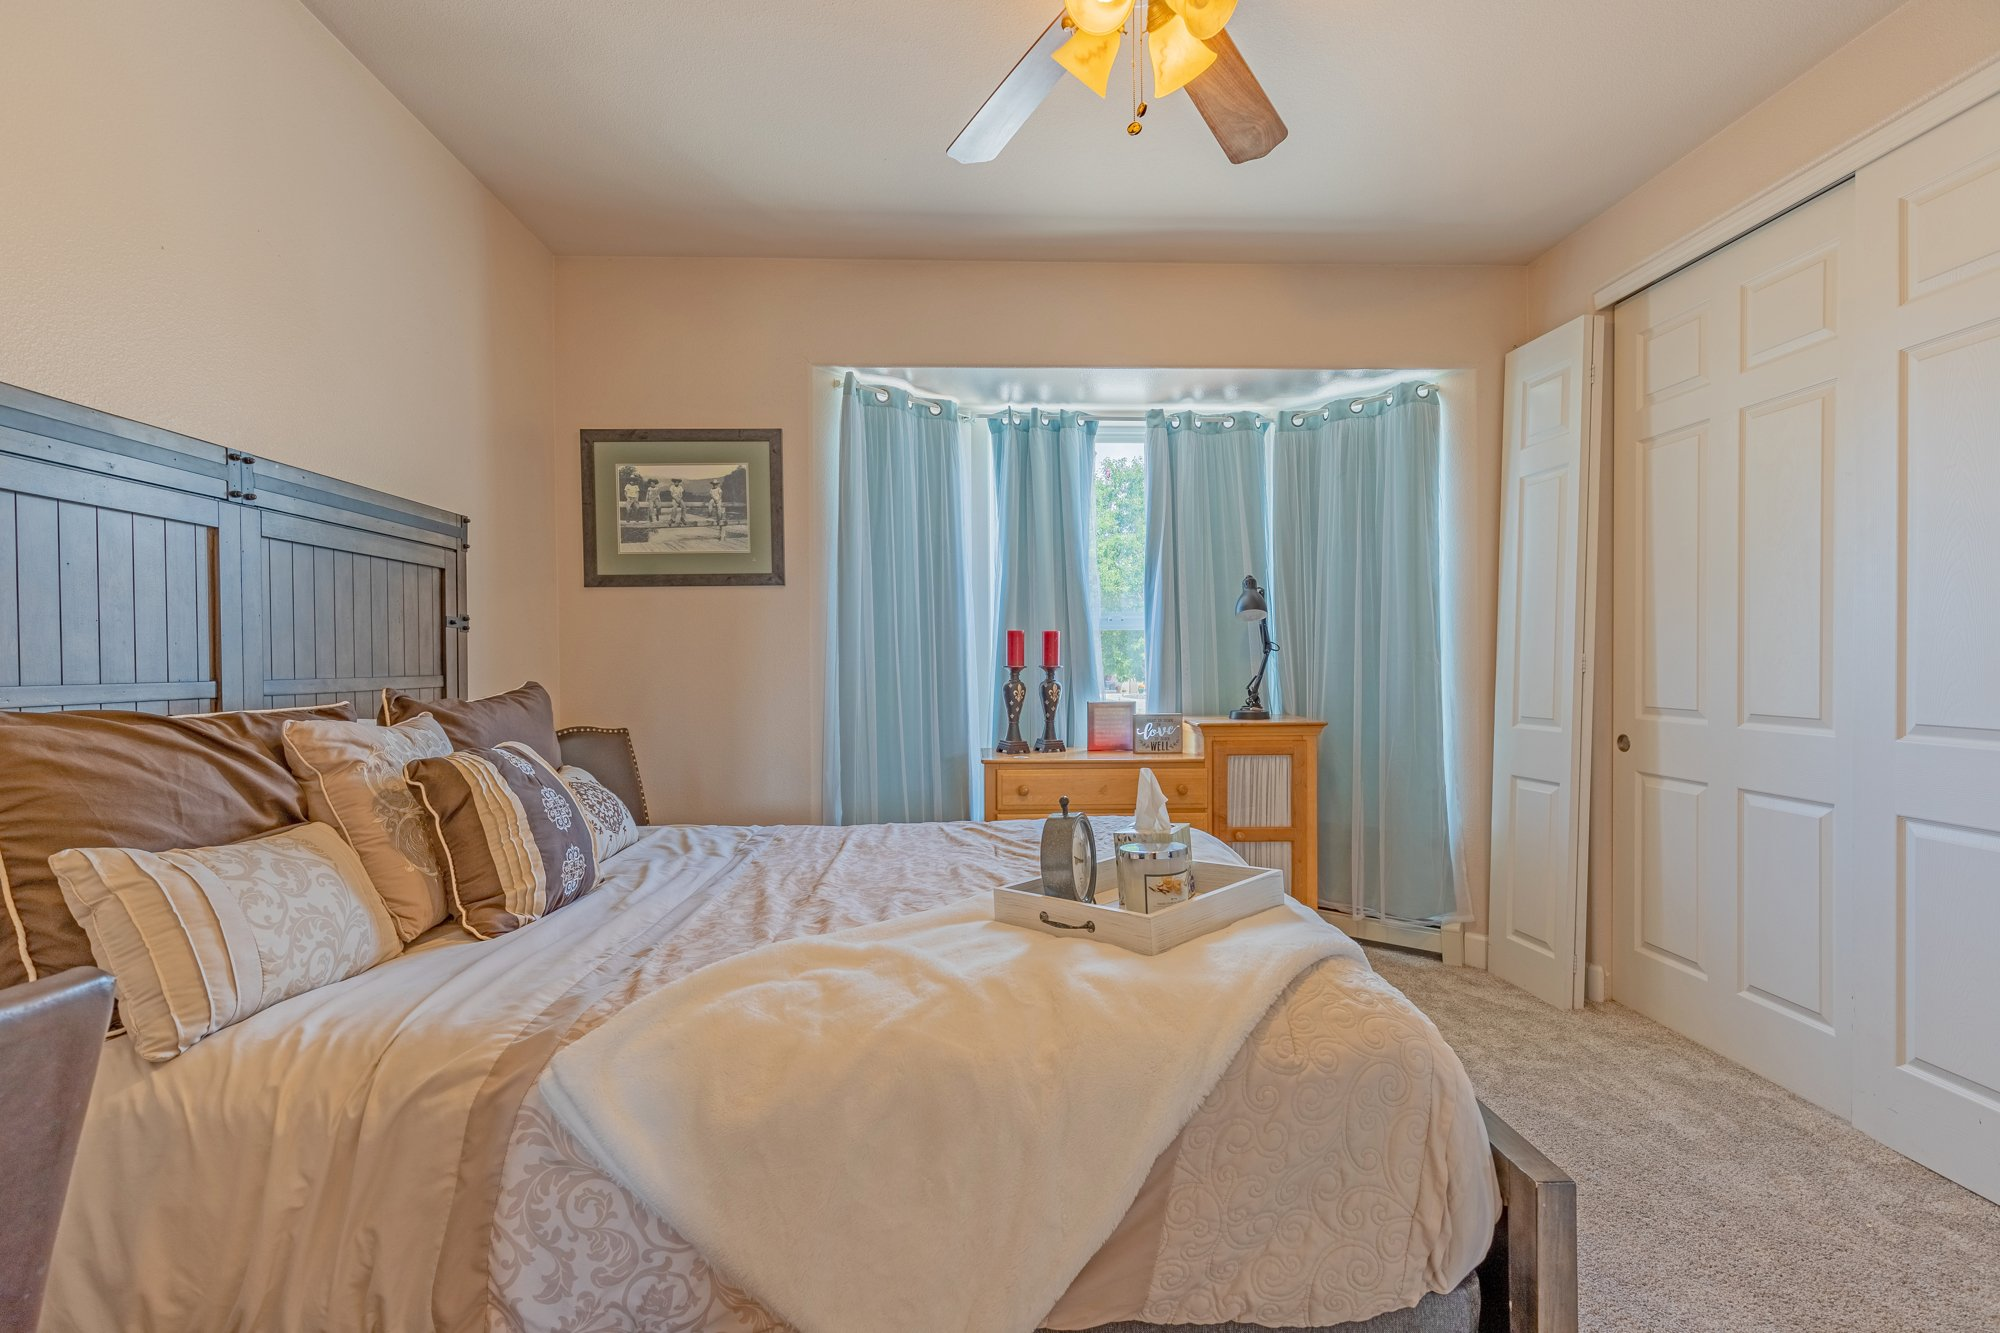 Bedroom with Carpeting - 2924 Lost Creek Rd S. Montrose, CO 81401 - Atha Team Real Estate Agents